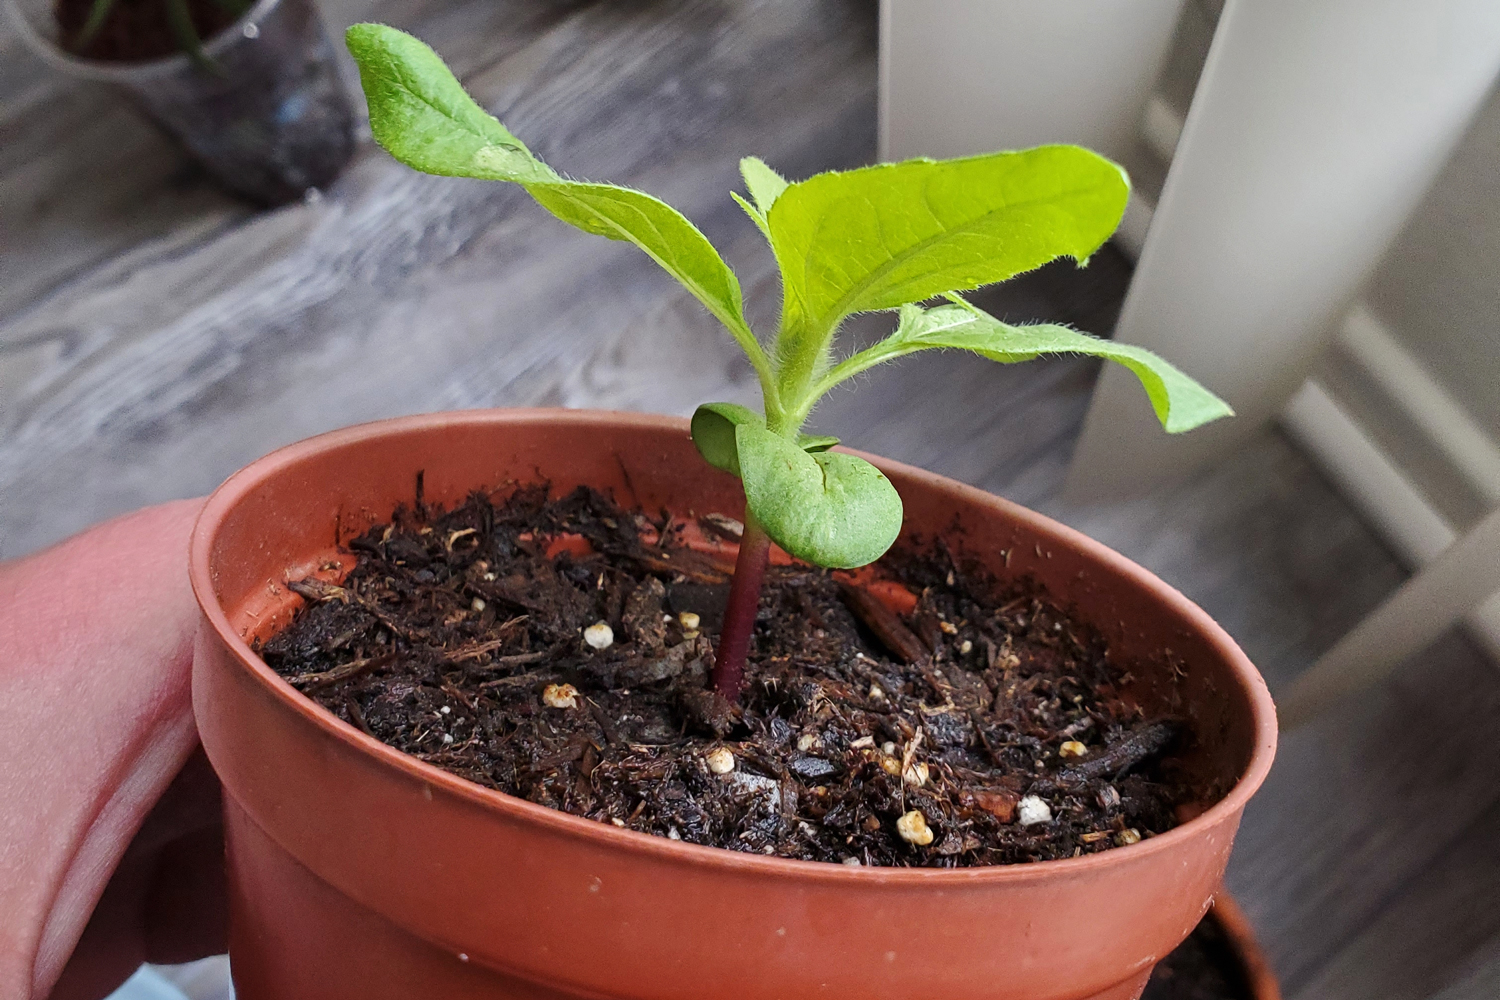 A sunflower seedling that is developing its third pair of true leaves